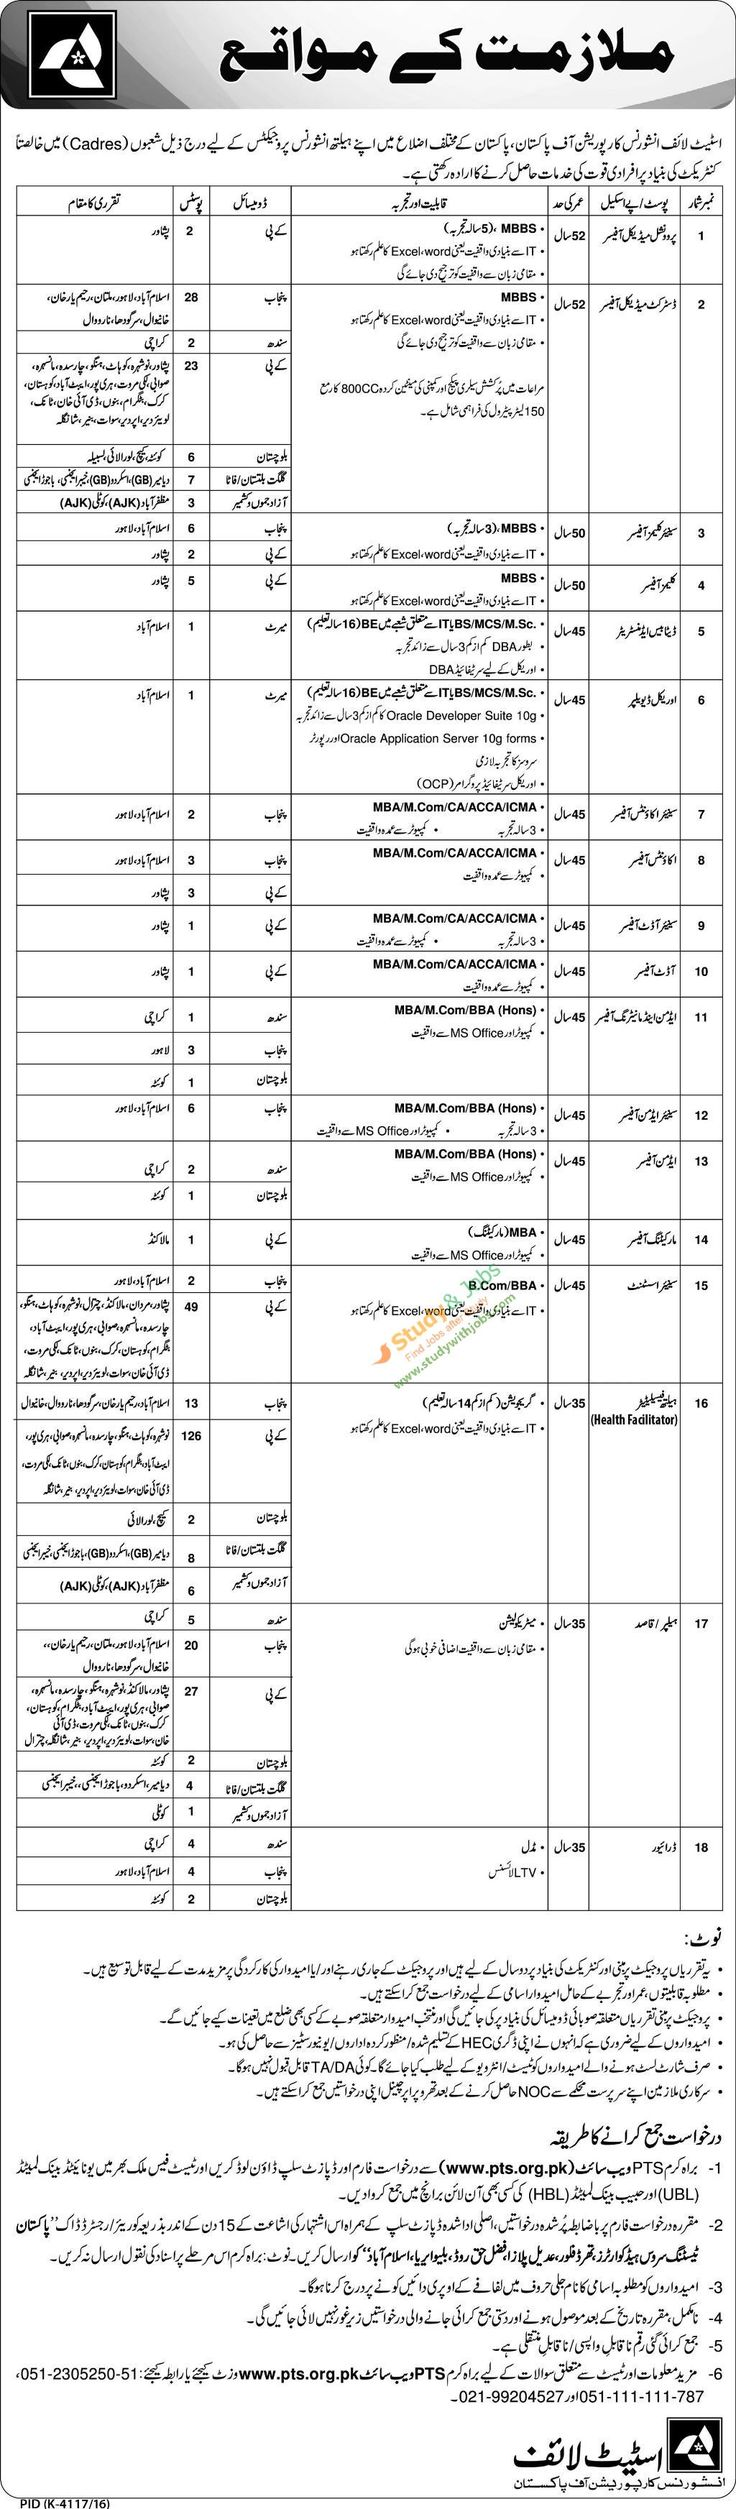 Various Vacancies in State Life Insurance Corporation of Pakistan 1st May 2017